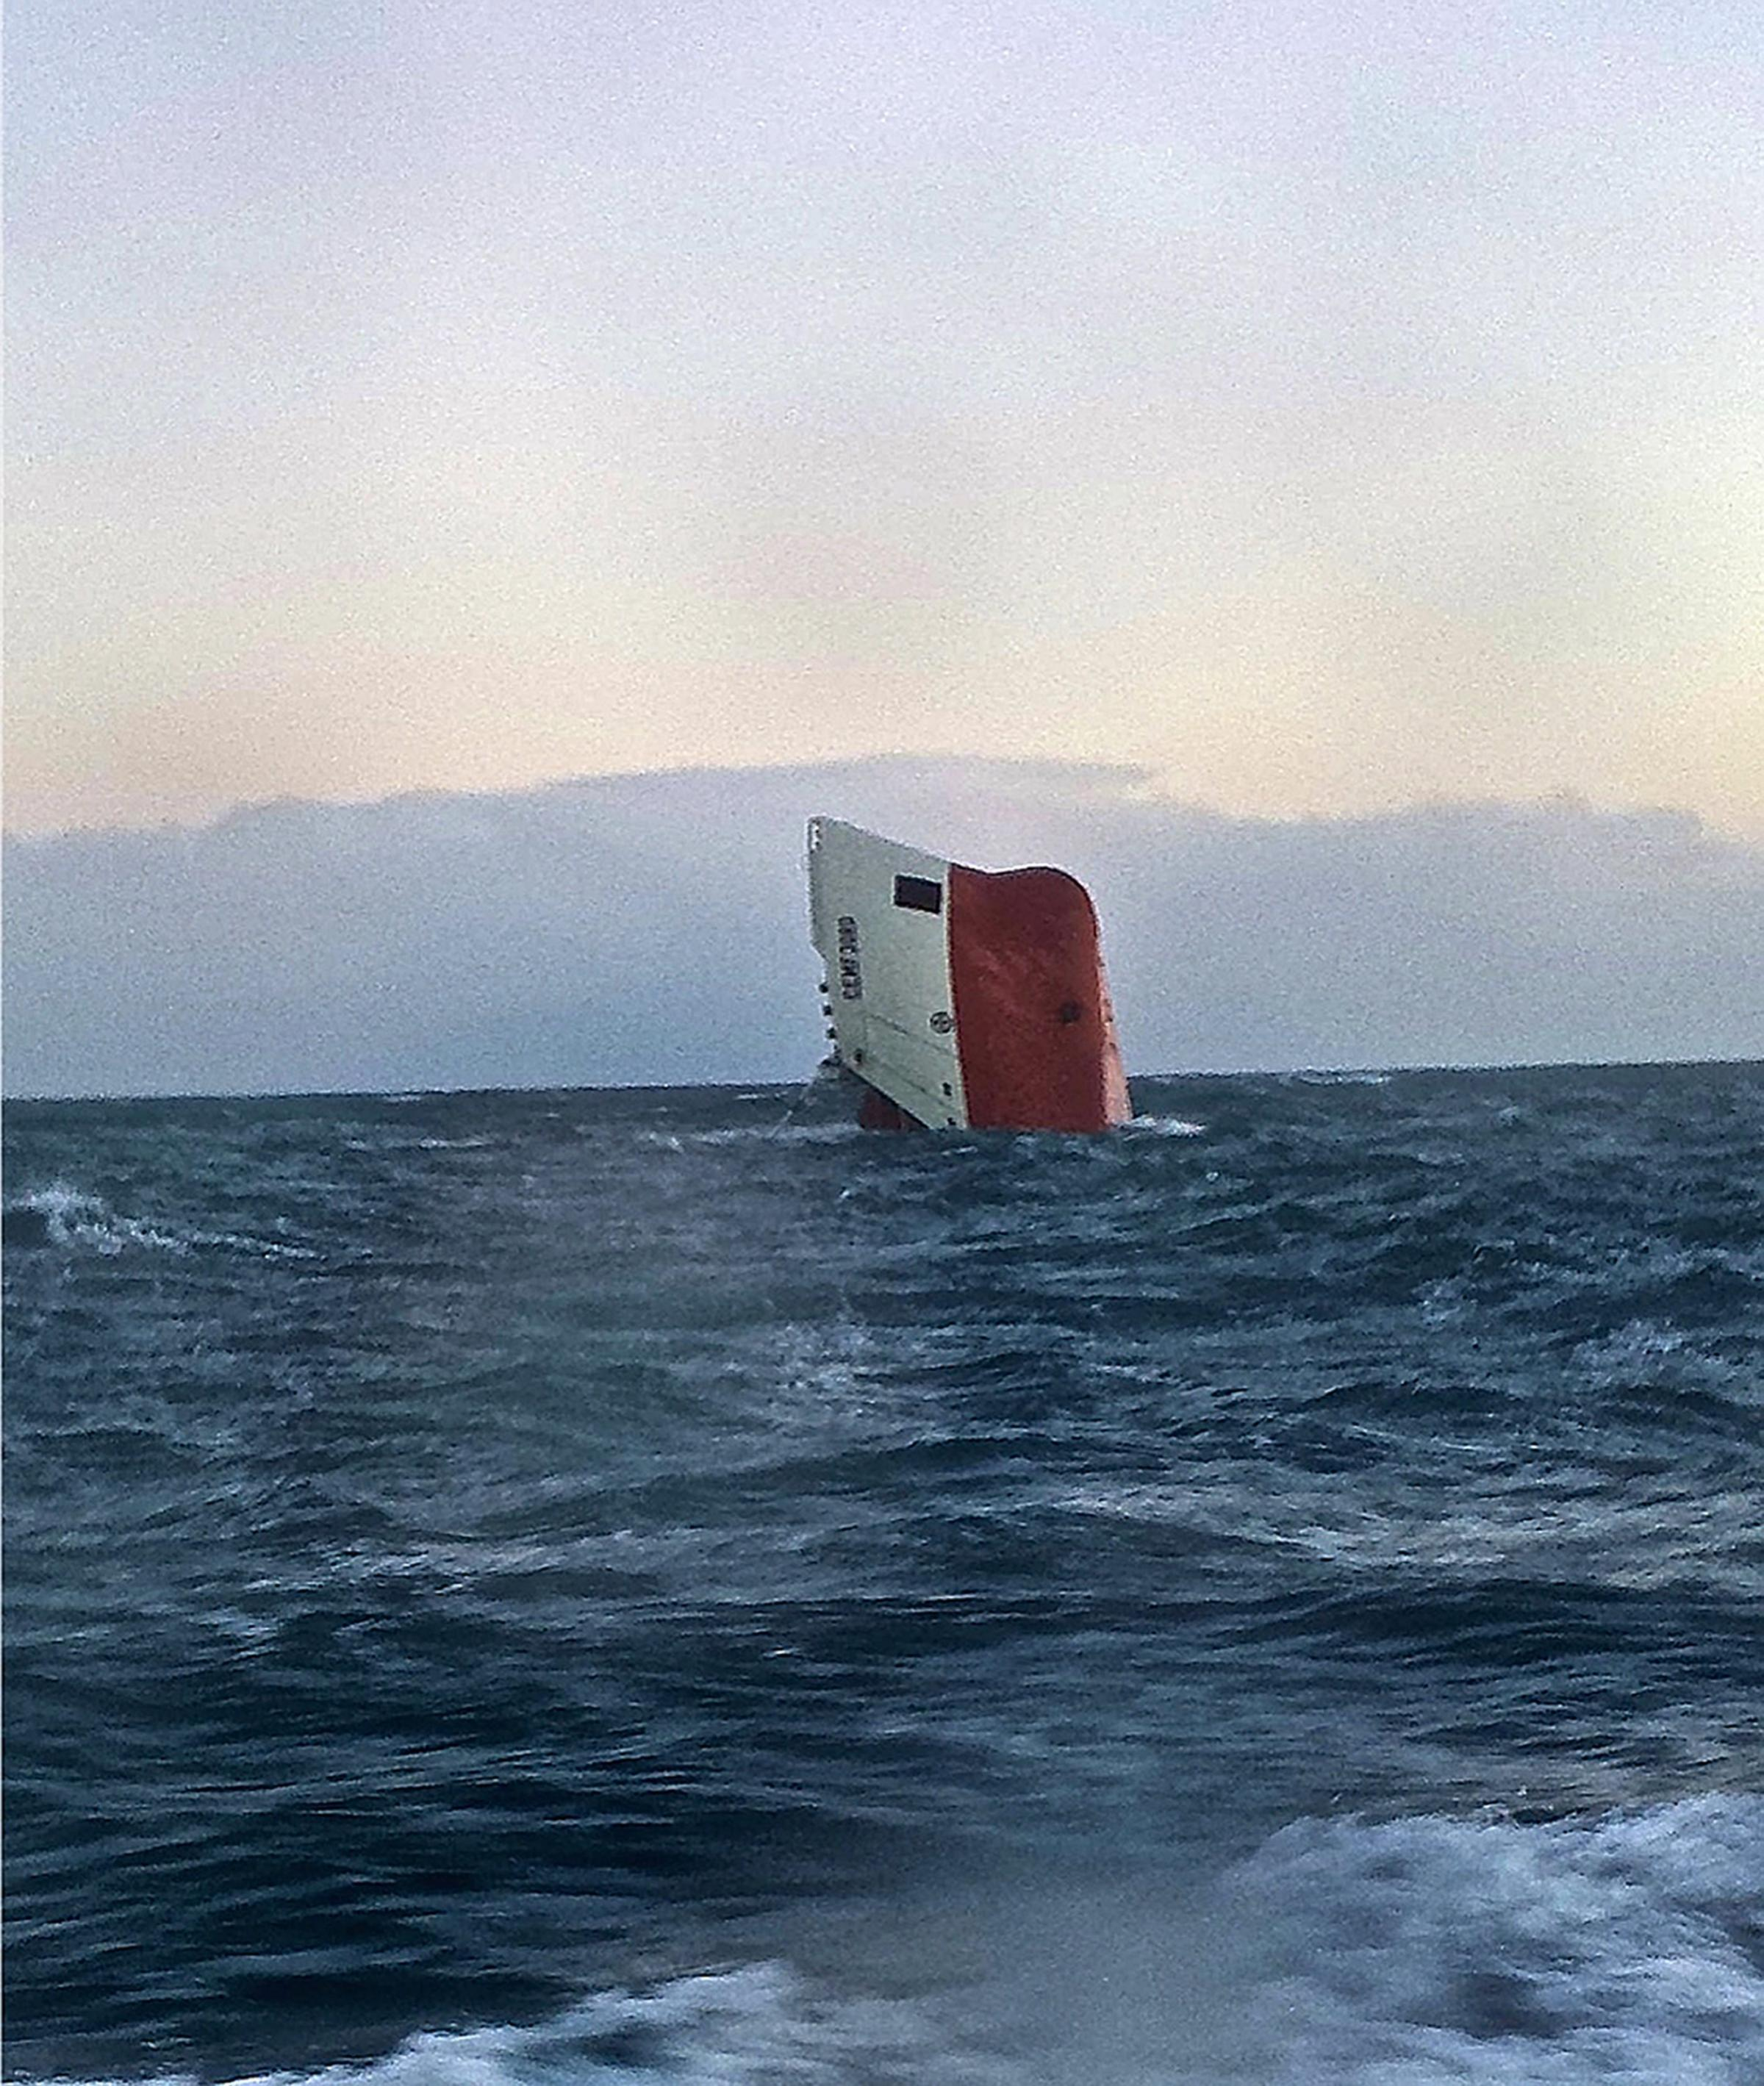 Cemfjord cargo ship pictured on January 3 2015 after it overturned off the north coast of Scotland